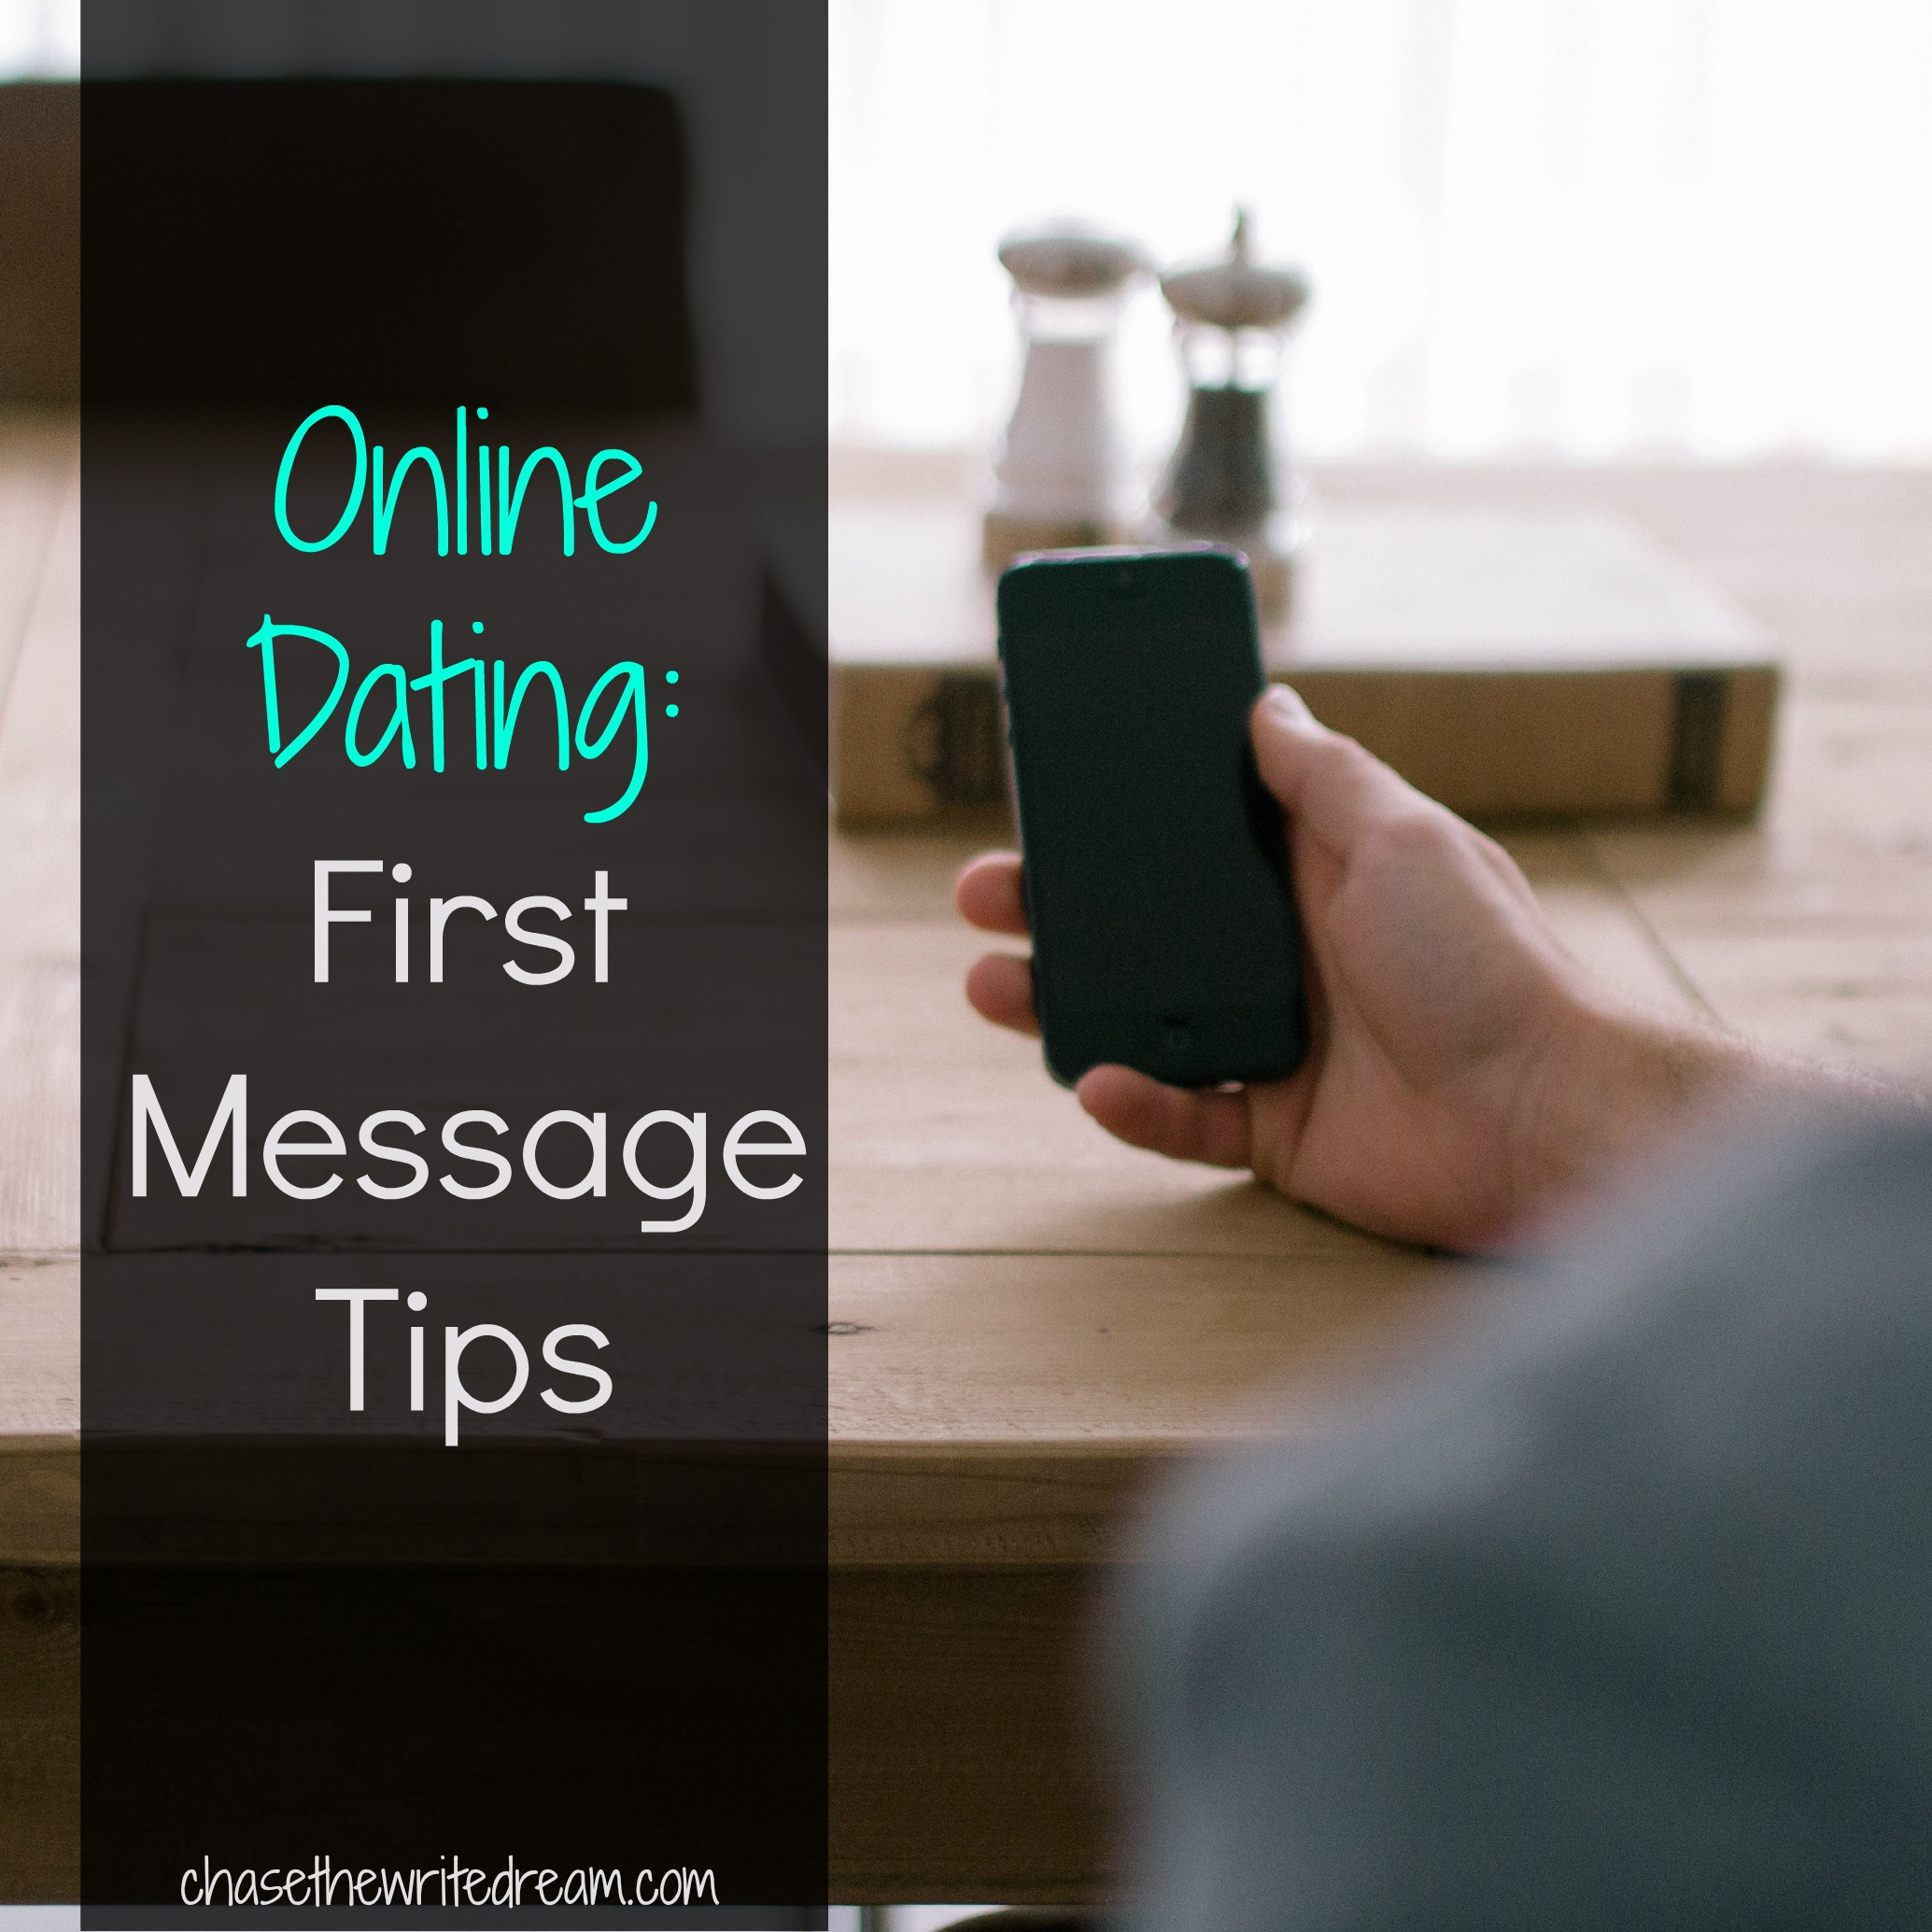 first messages on dating sites Those first poetic little messages will make or break your conversation,  dating  app and site zoosk did a little research on their users and.